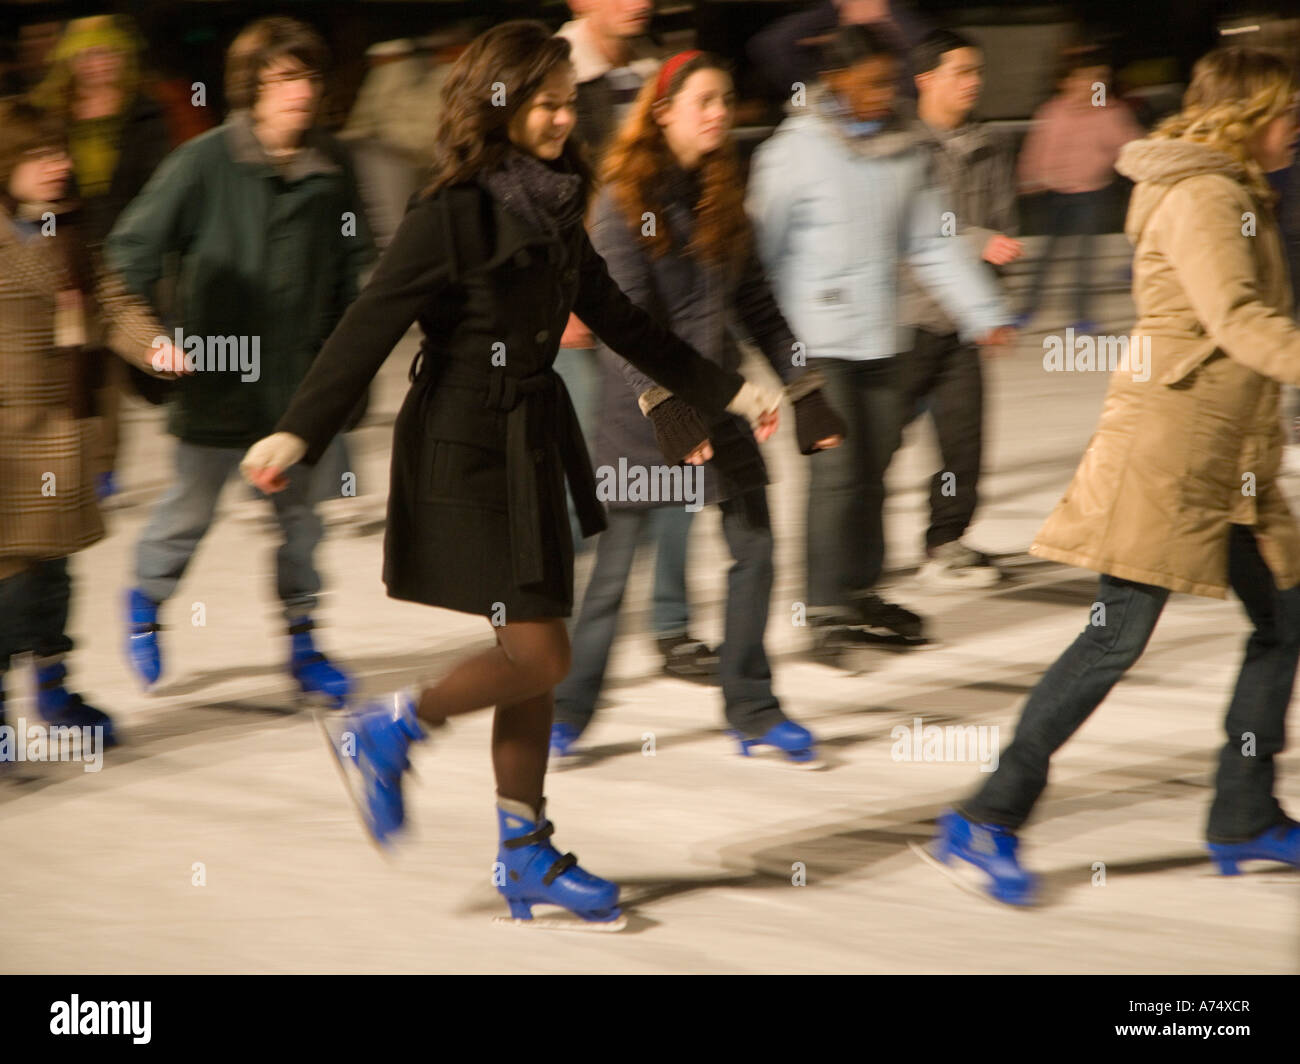 ice skaters speeding past in blurred motion - Stock Image